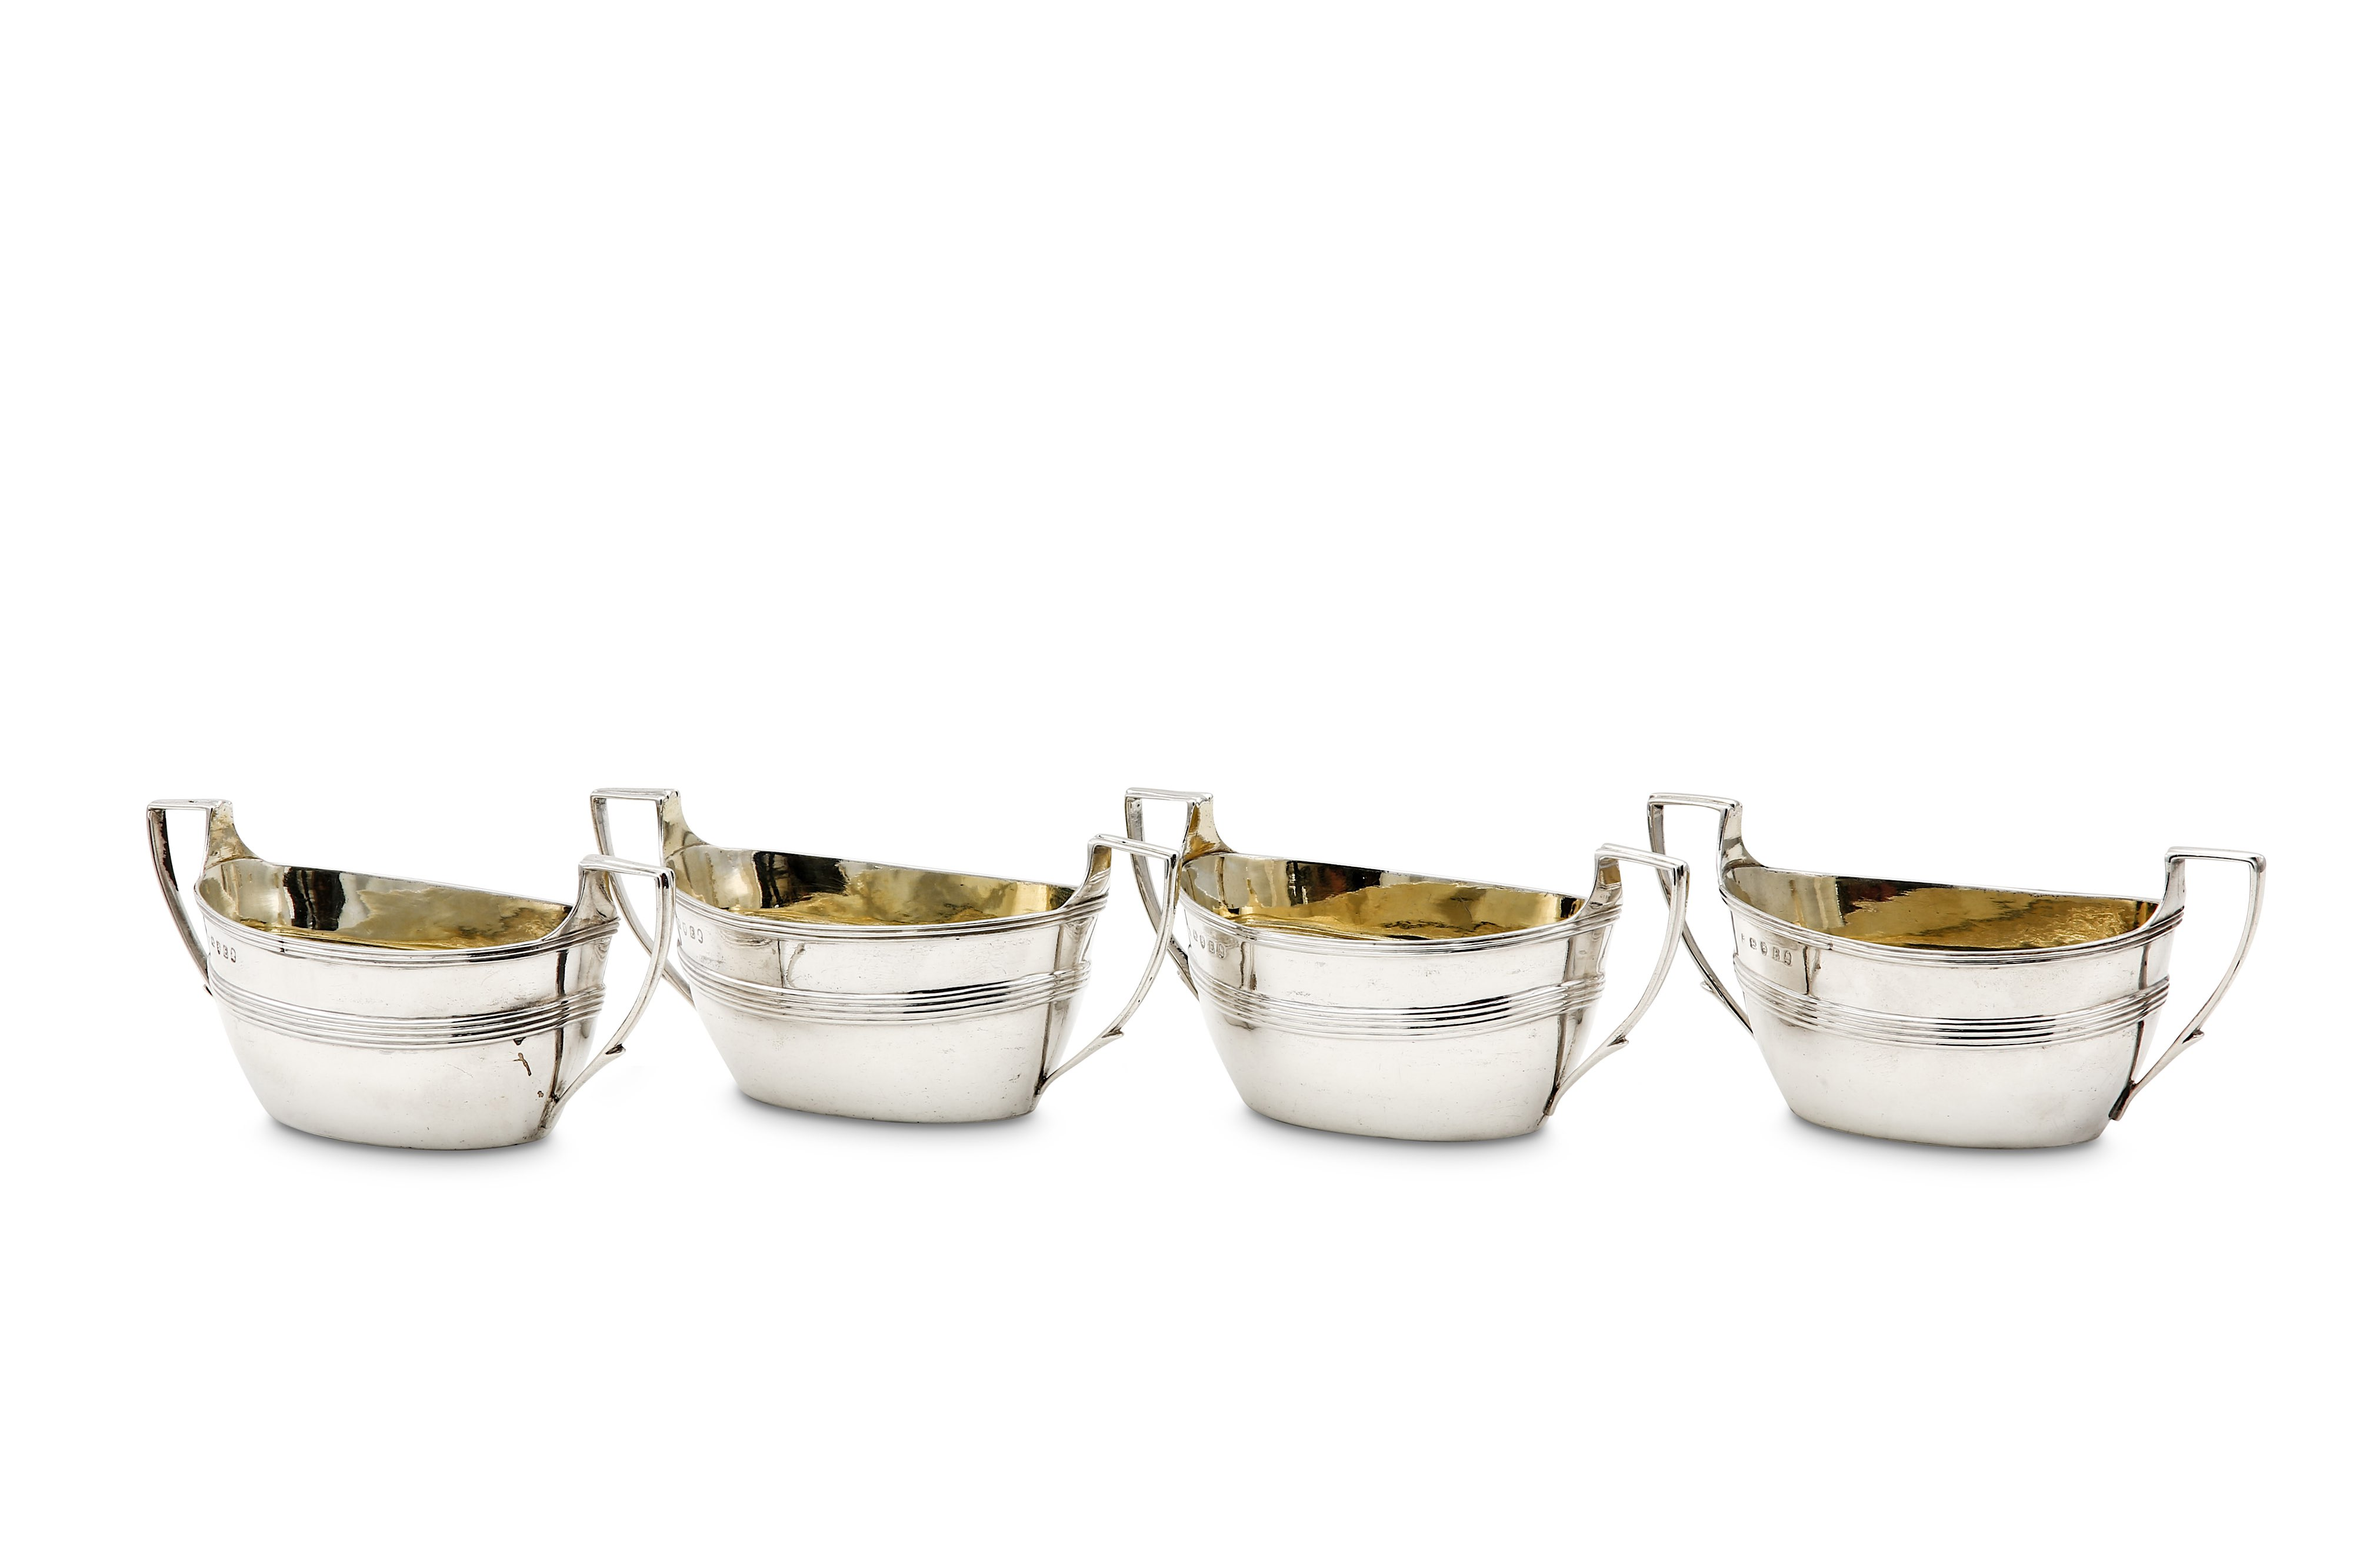 Lot 35 - A set of four George III sterling silver twin handled salts, London 1800 by Duncan Urquhart & Naphta